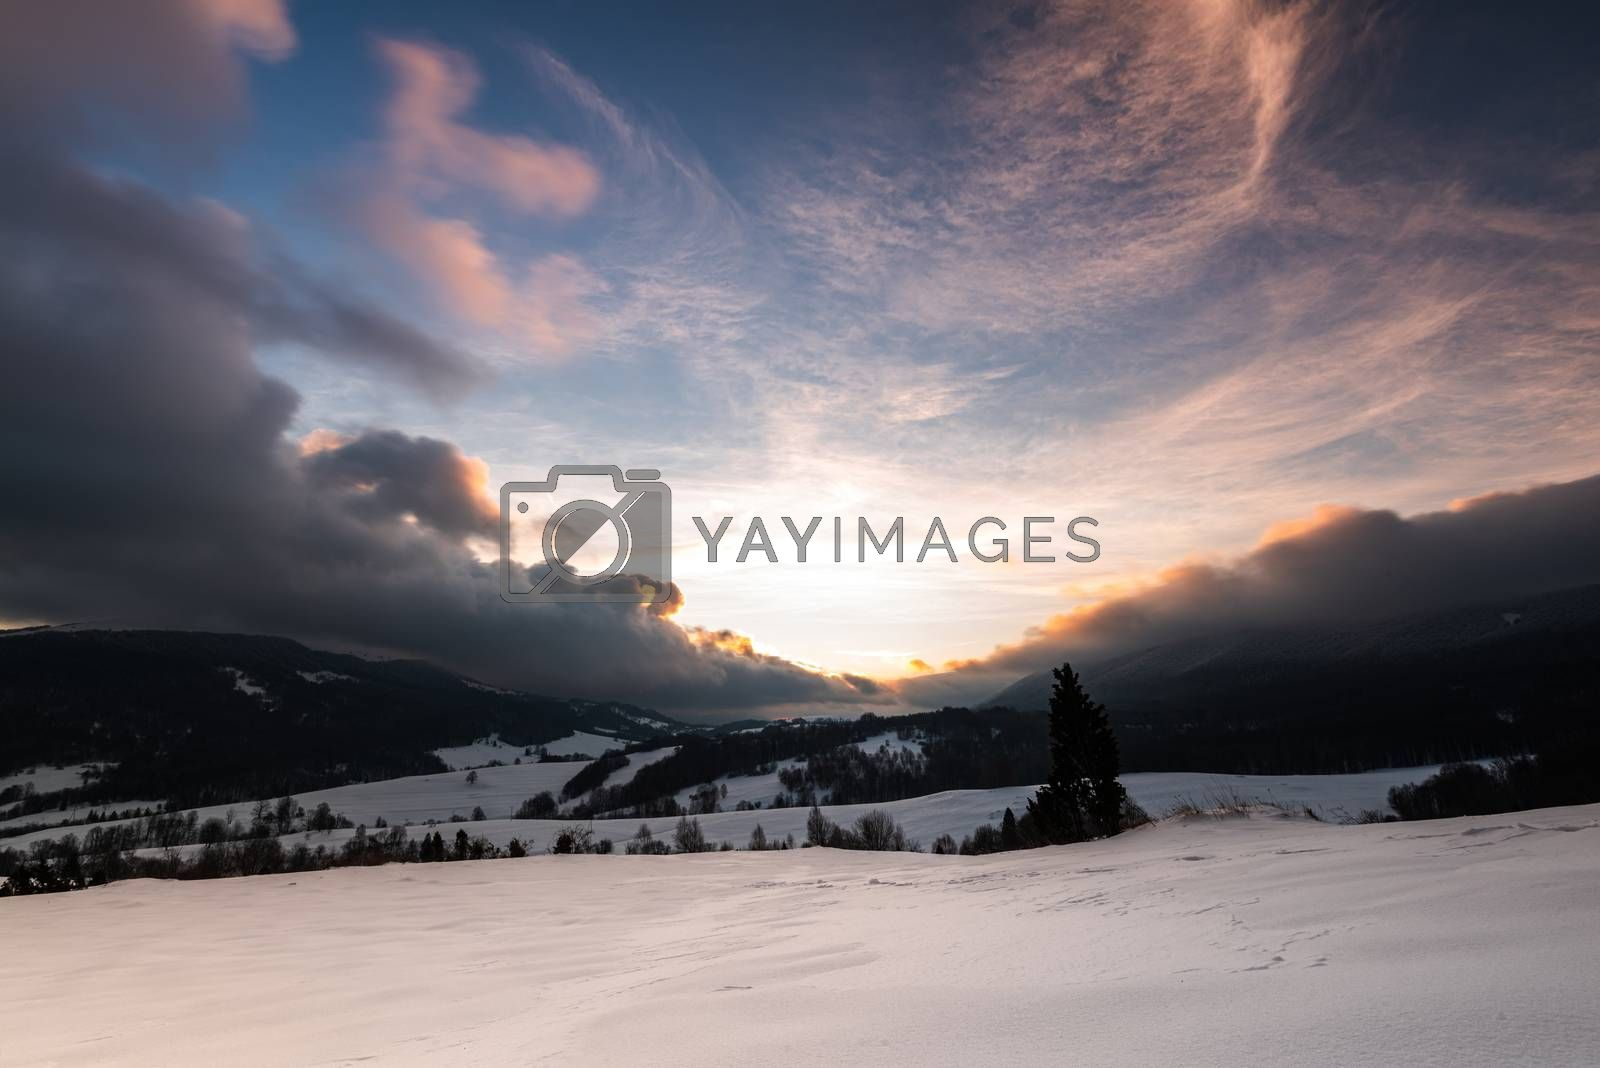 Sunrise at Bieszczady Mountains in Carpathia, Poland at Winter S by merc67